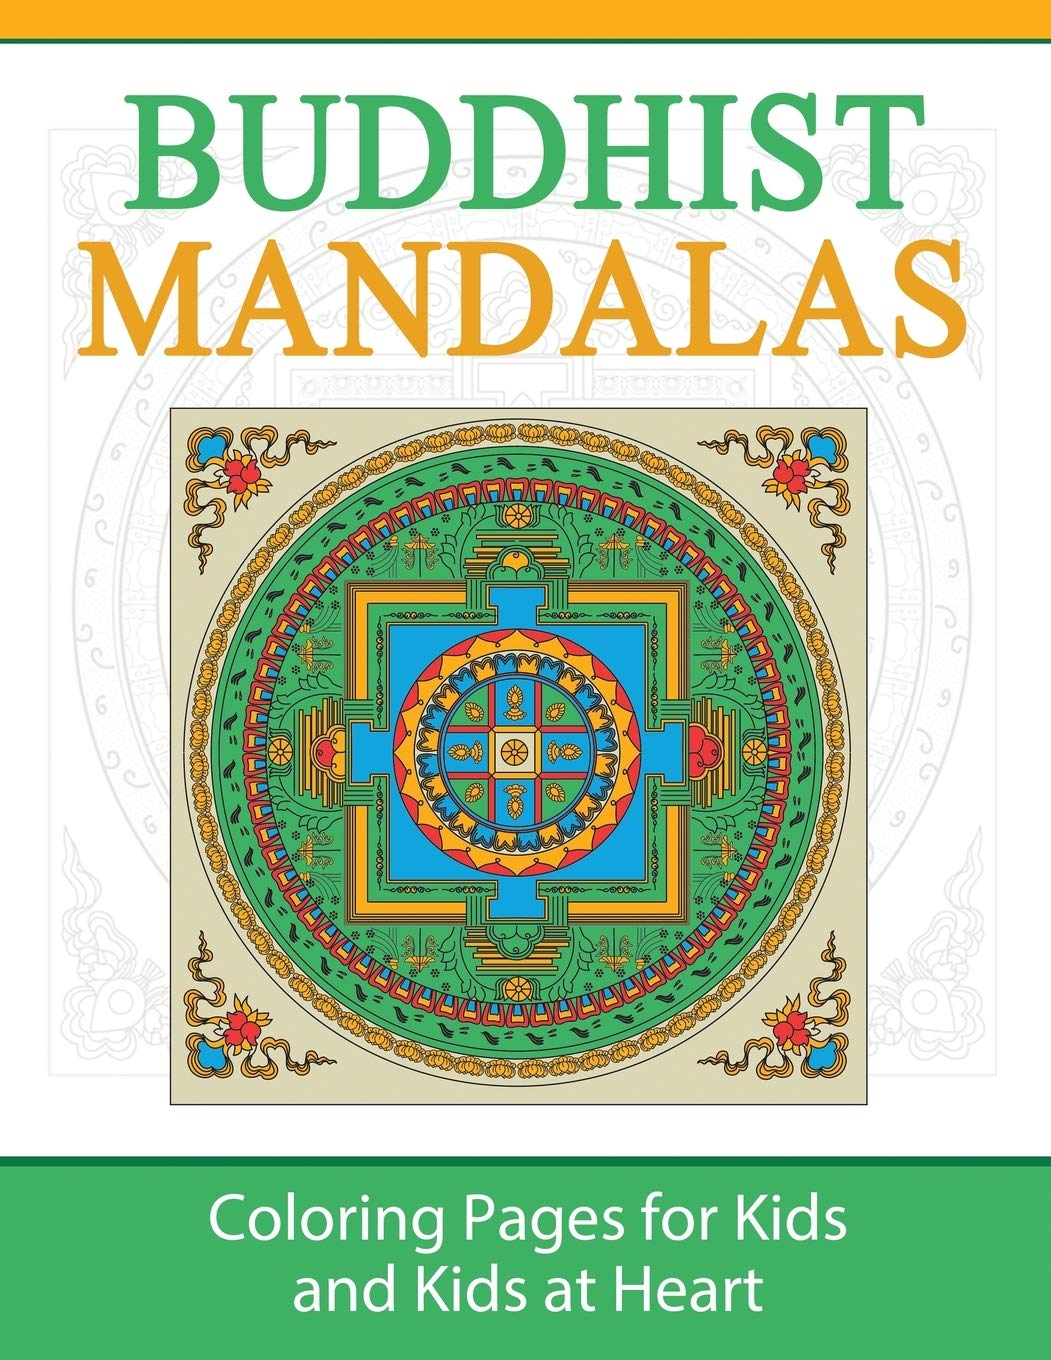 Buddhist Mandalas Coloring Pages For Kids Kids At Heart Hands On Art History Volume 3 Art History Hands On 9781948344241 Amazon Com Books